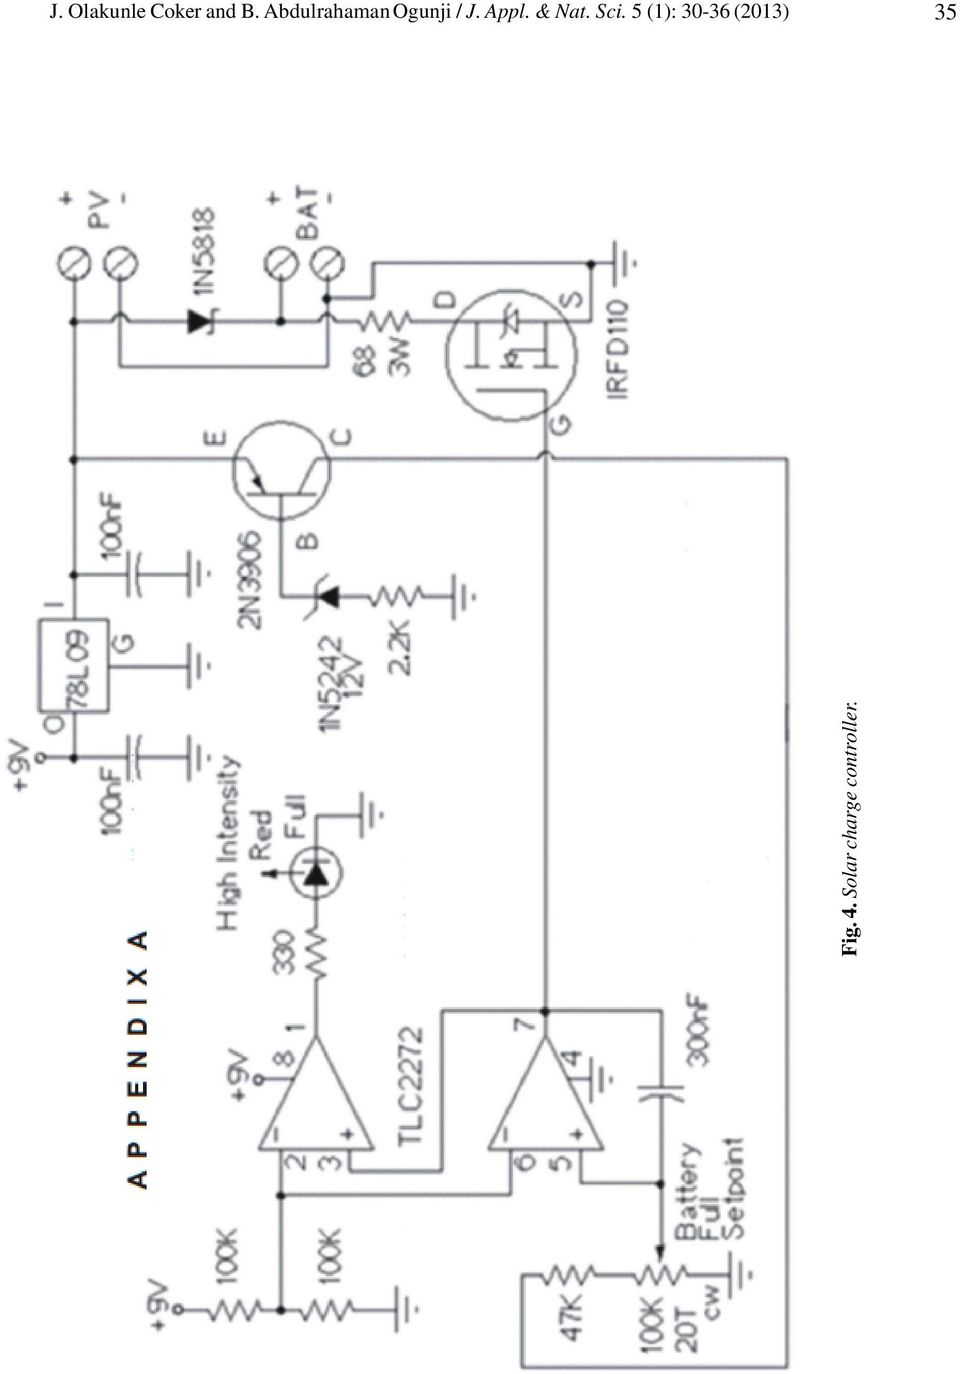 Design And Construction Of An Inverter Using Solar Cell As A Source With Panel Schematic Diagram Also Npn Pnp Transistor Charger Pdf